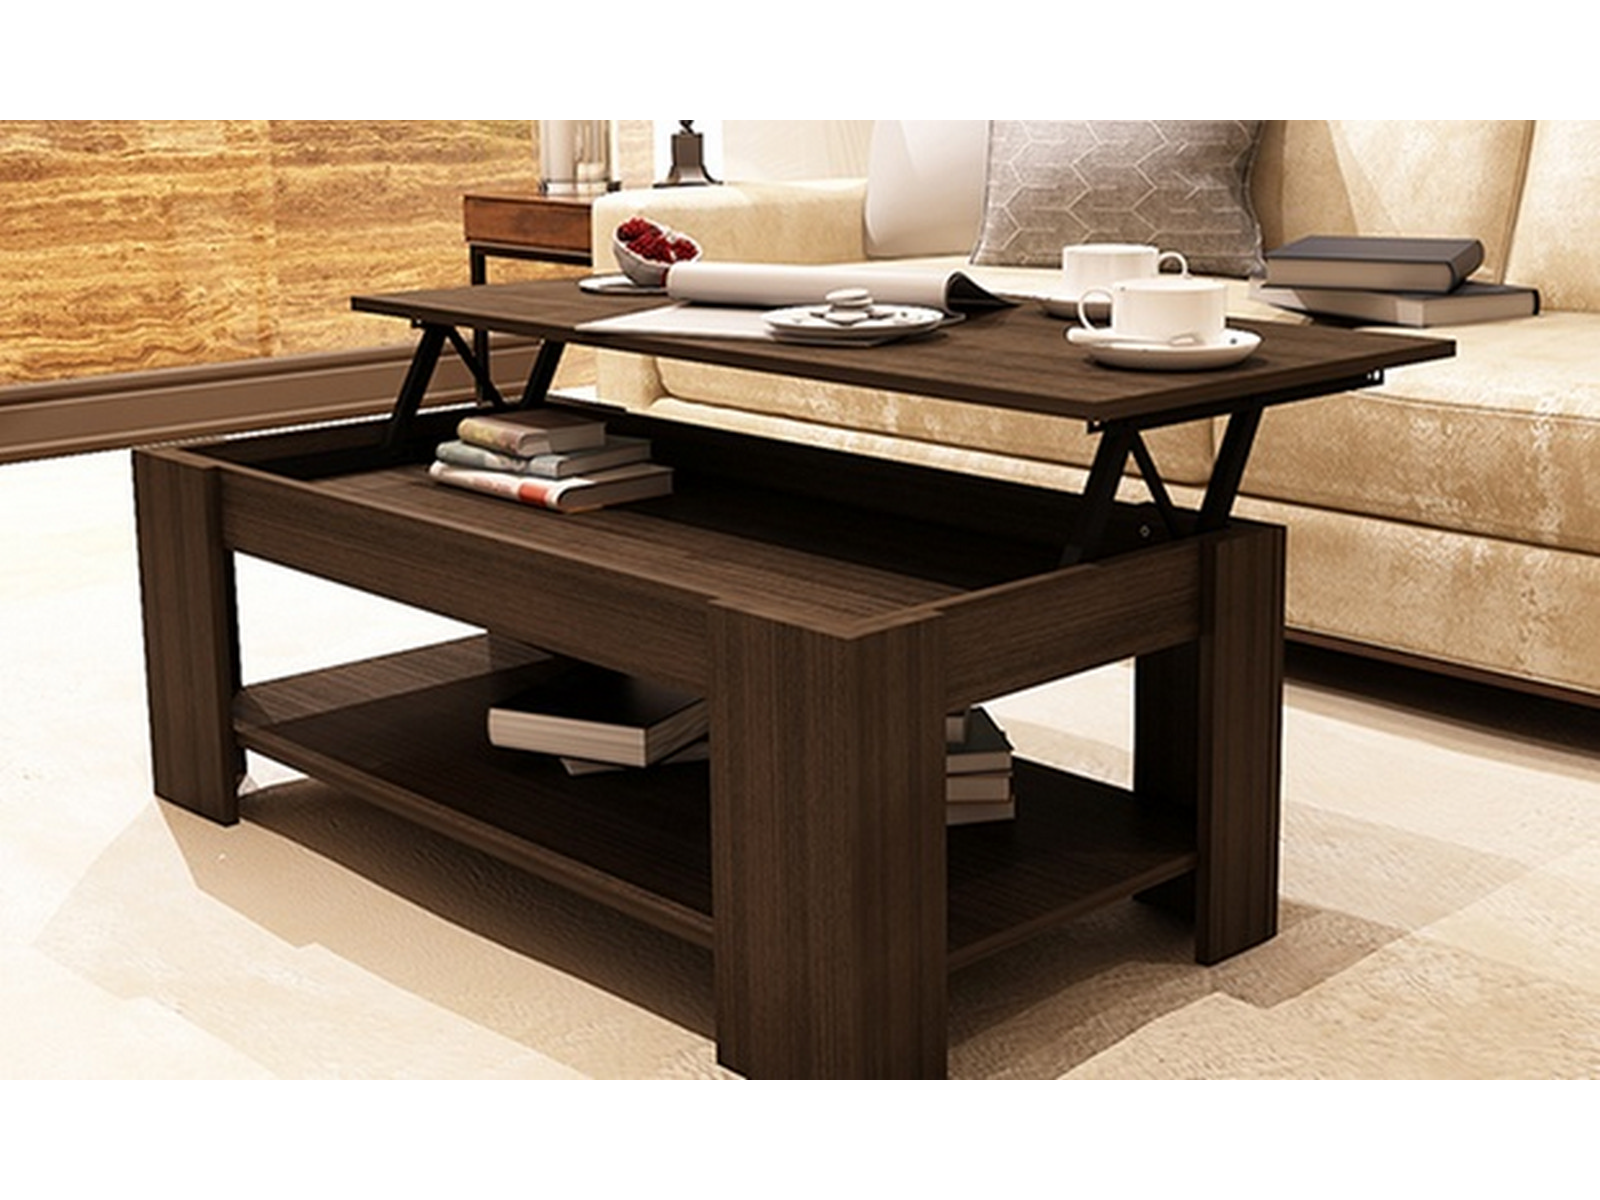 New Caspian Espresso Lift Up Top Coffee Table With Storage Shelf Ebay